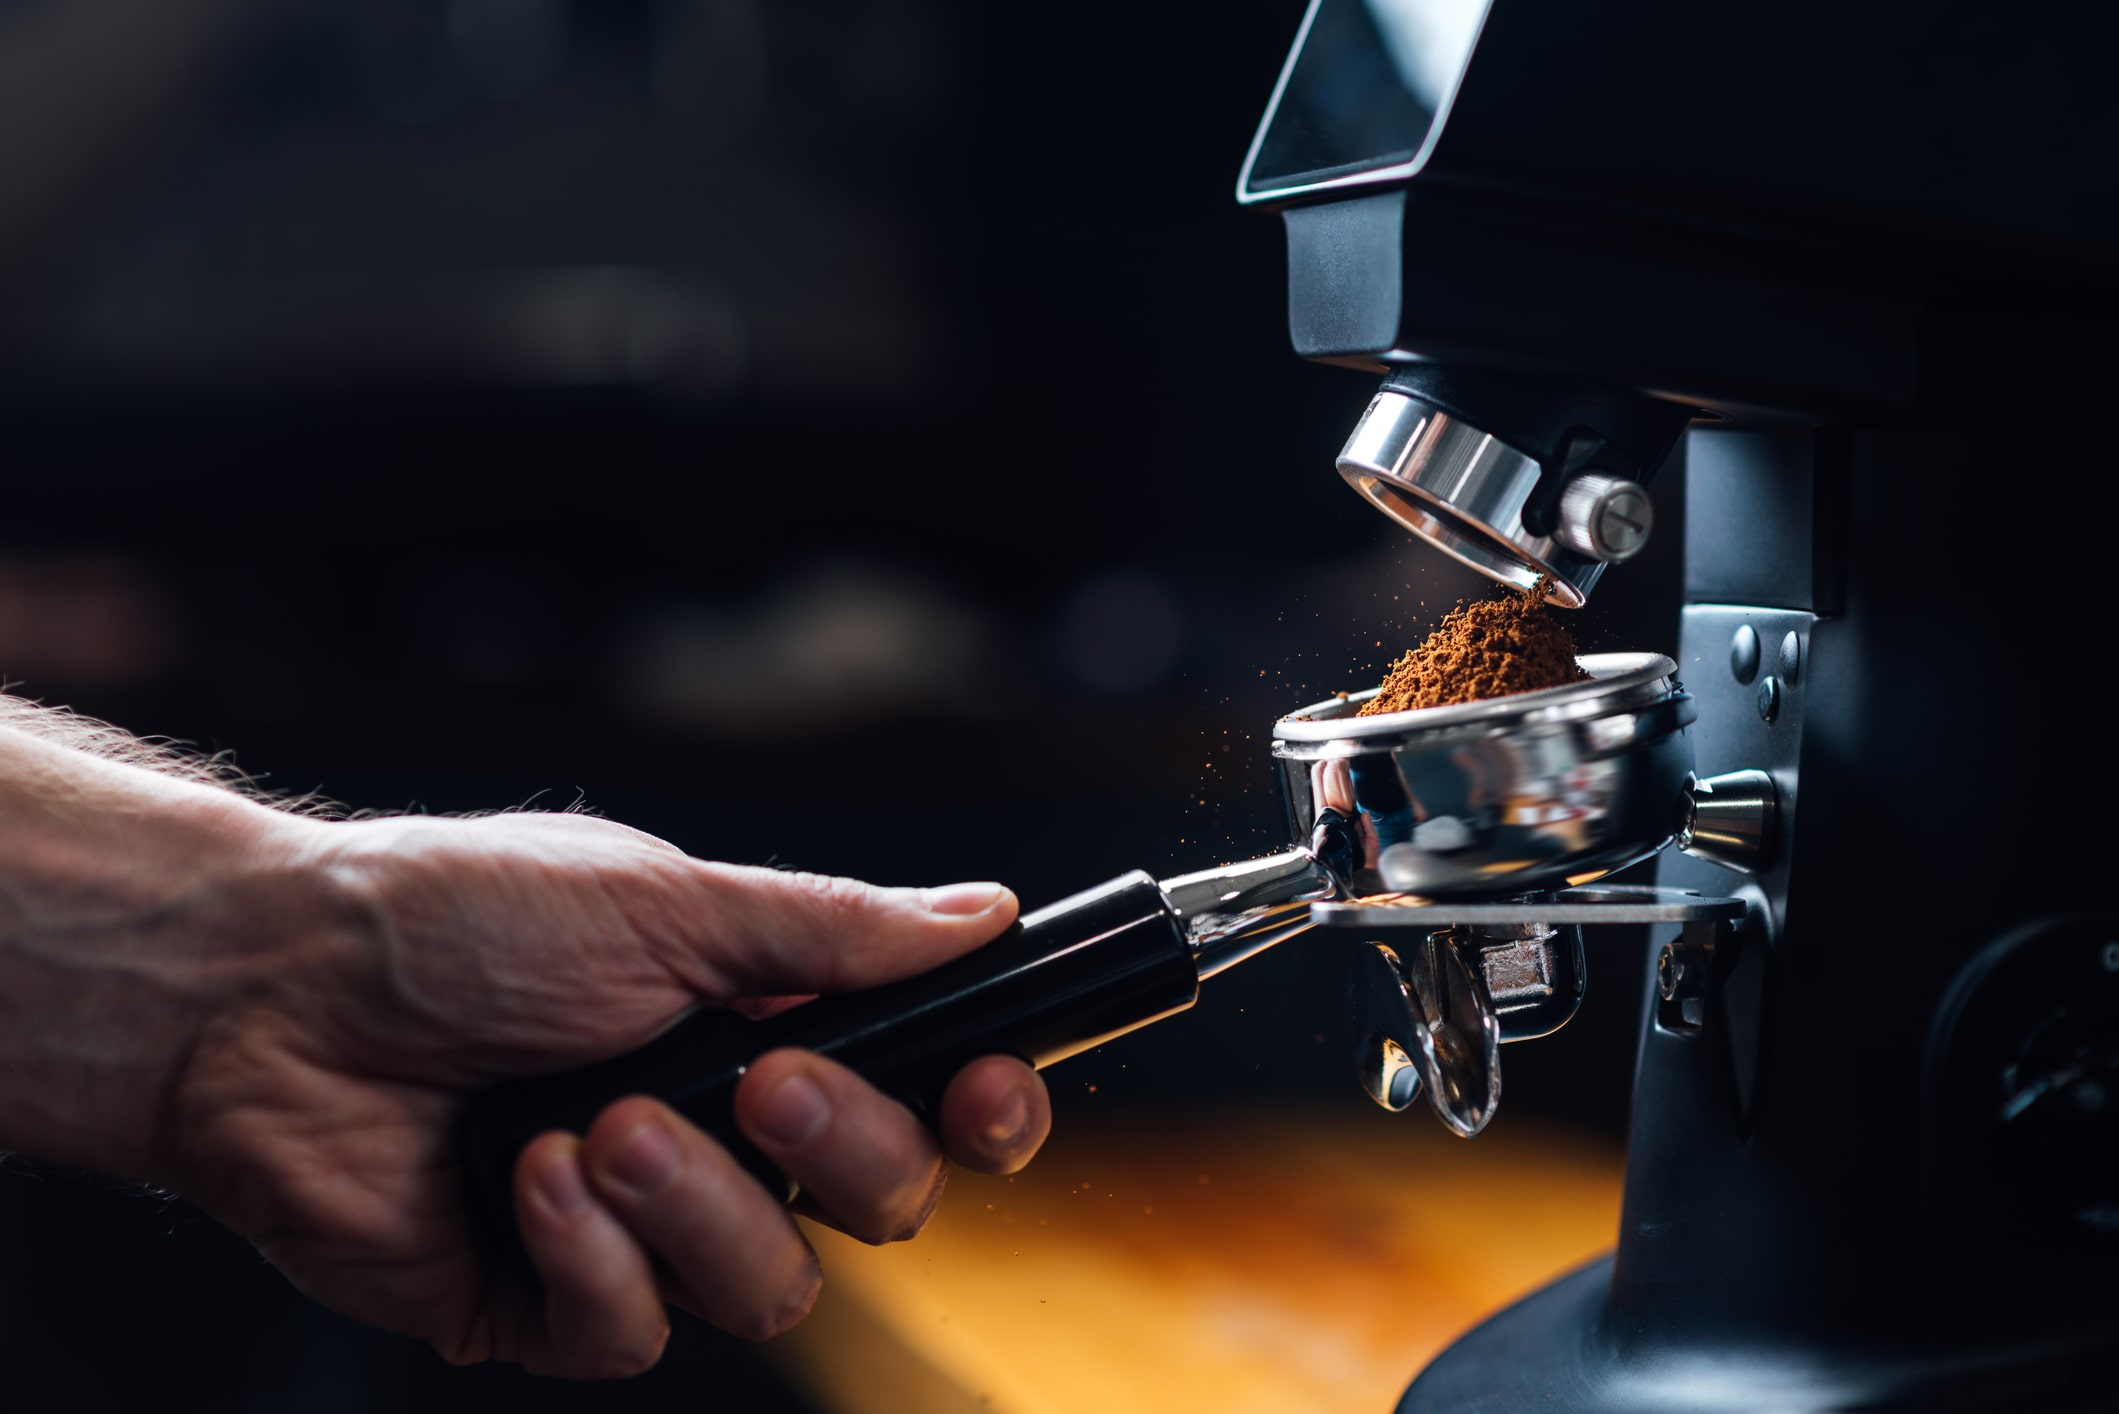 ground-coffee-pouring-into-a-portafilter-with-a-grinder-166226267-min